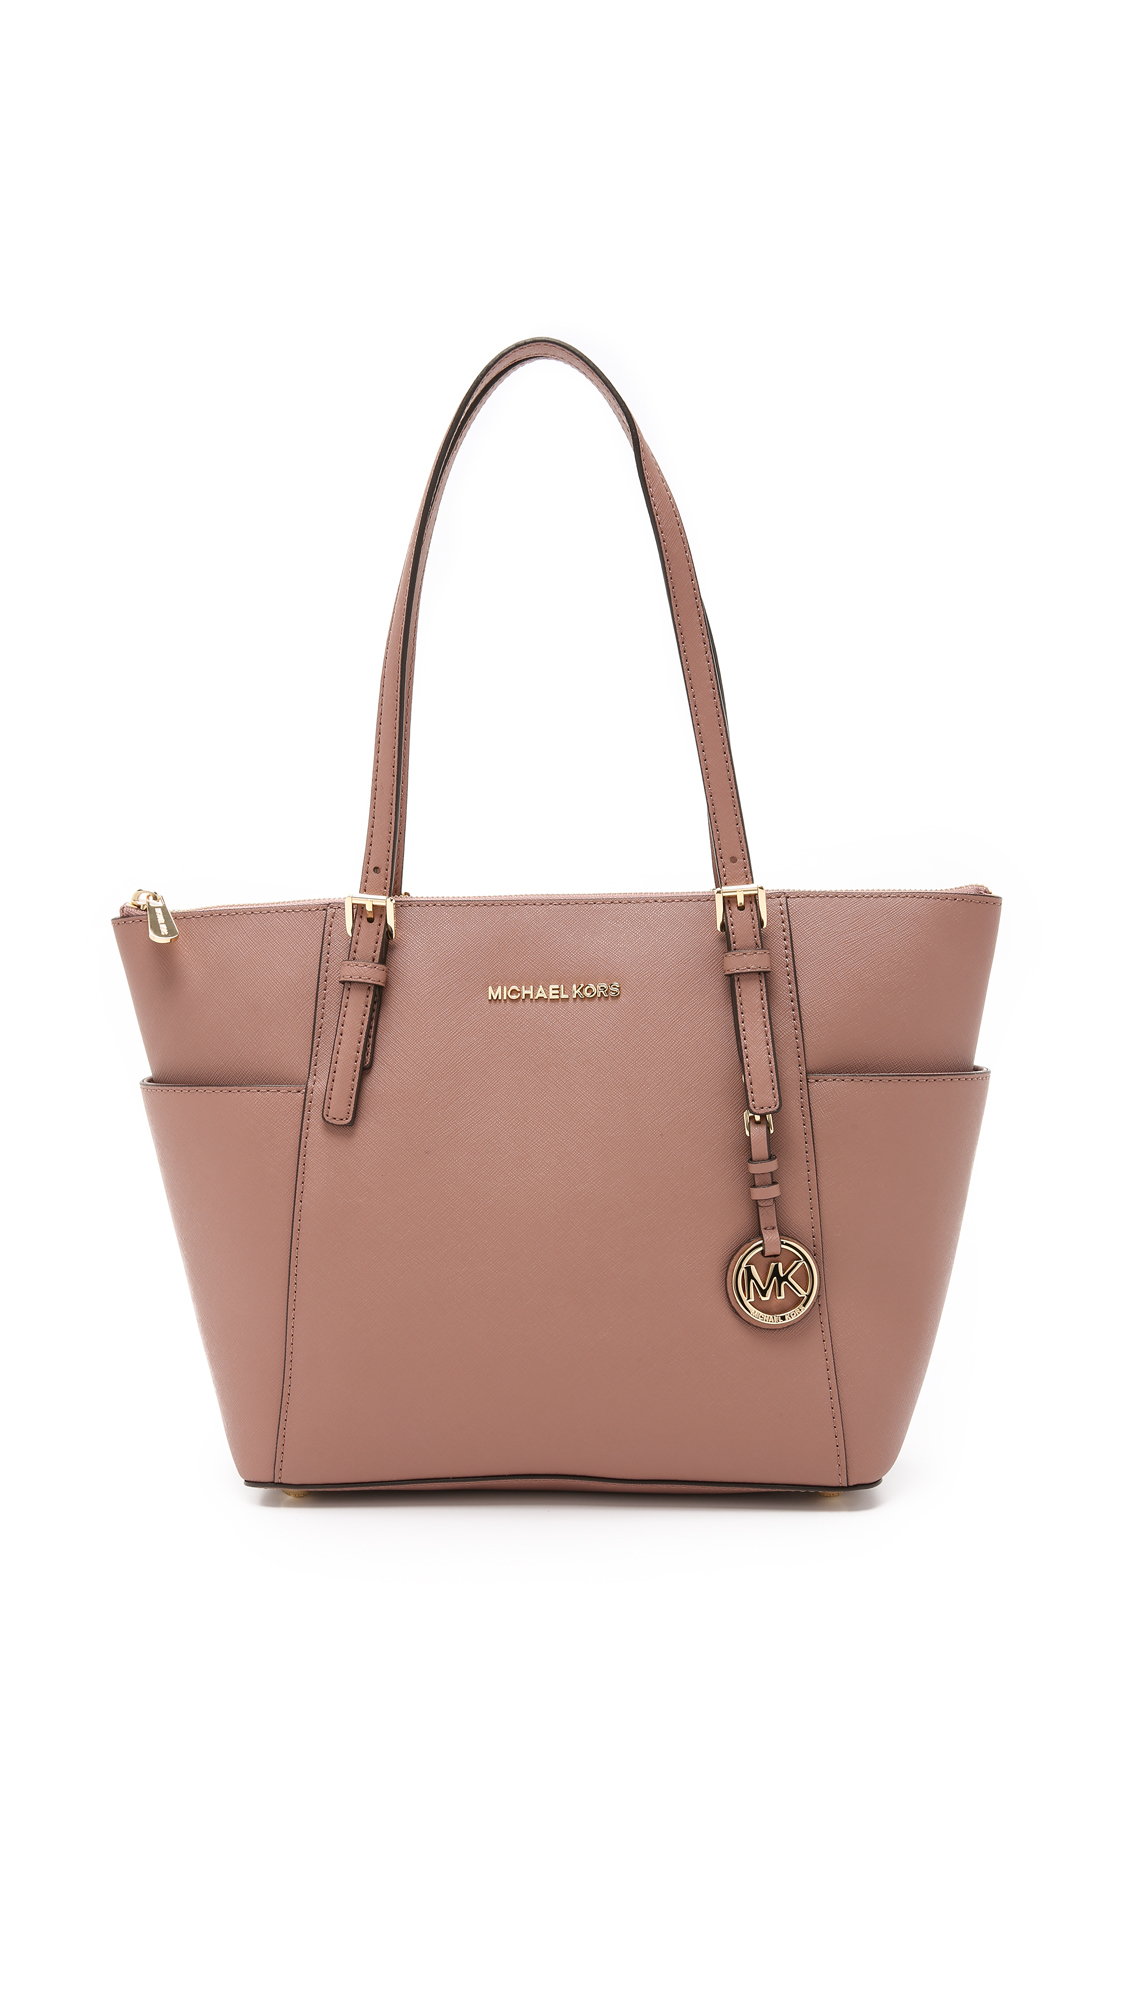 2f646699fe7c ... bags 466ad 91099 purchase lyst michael michael kors jet set top zip tote  dusty rose in pink 25cdd 2eb36 ...